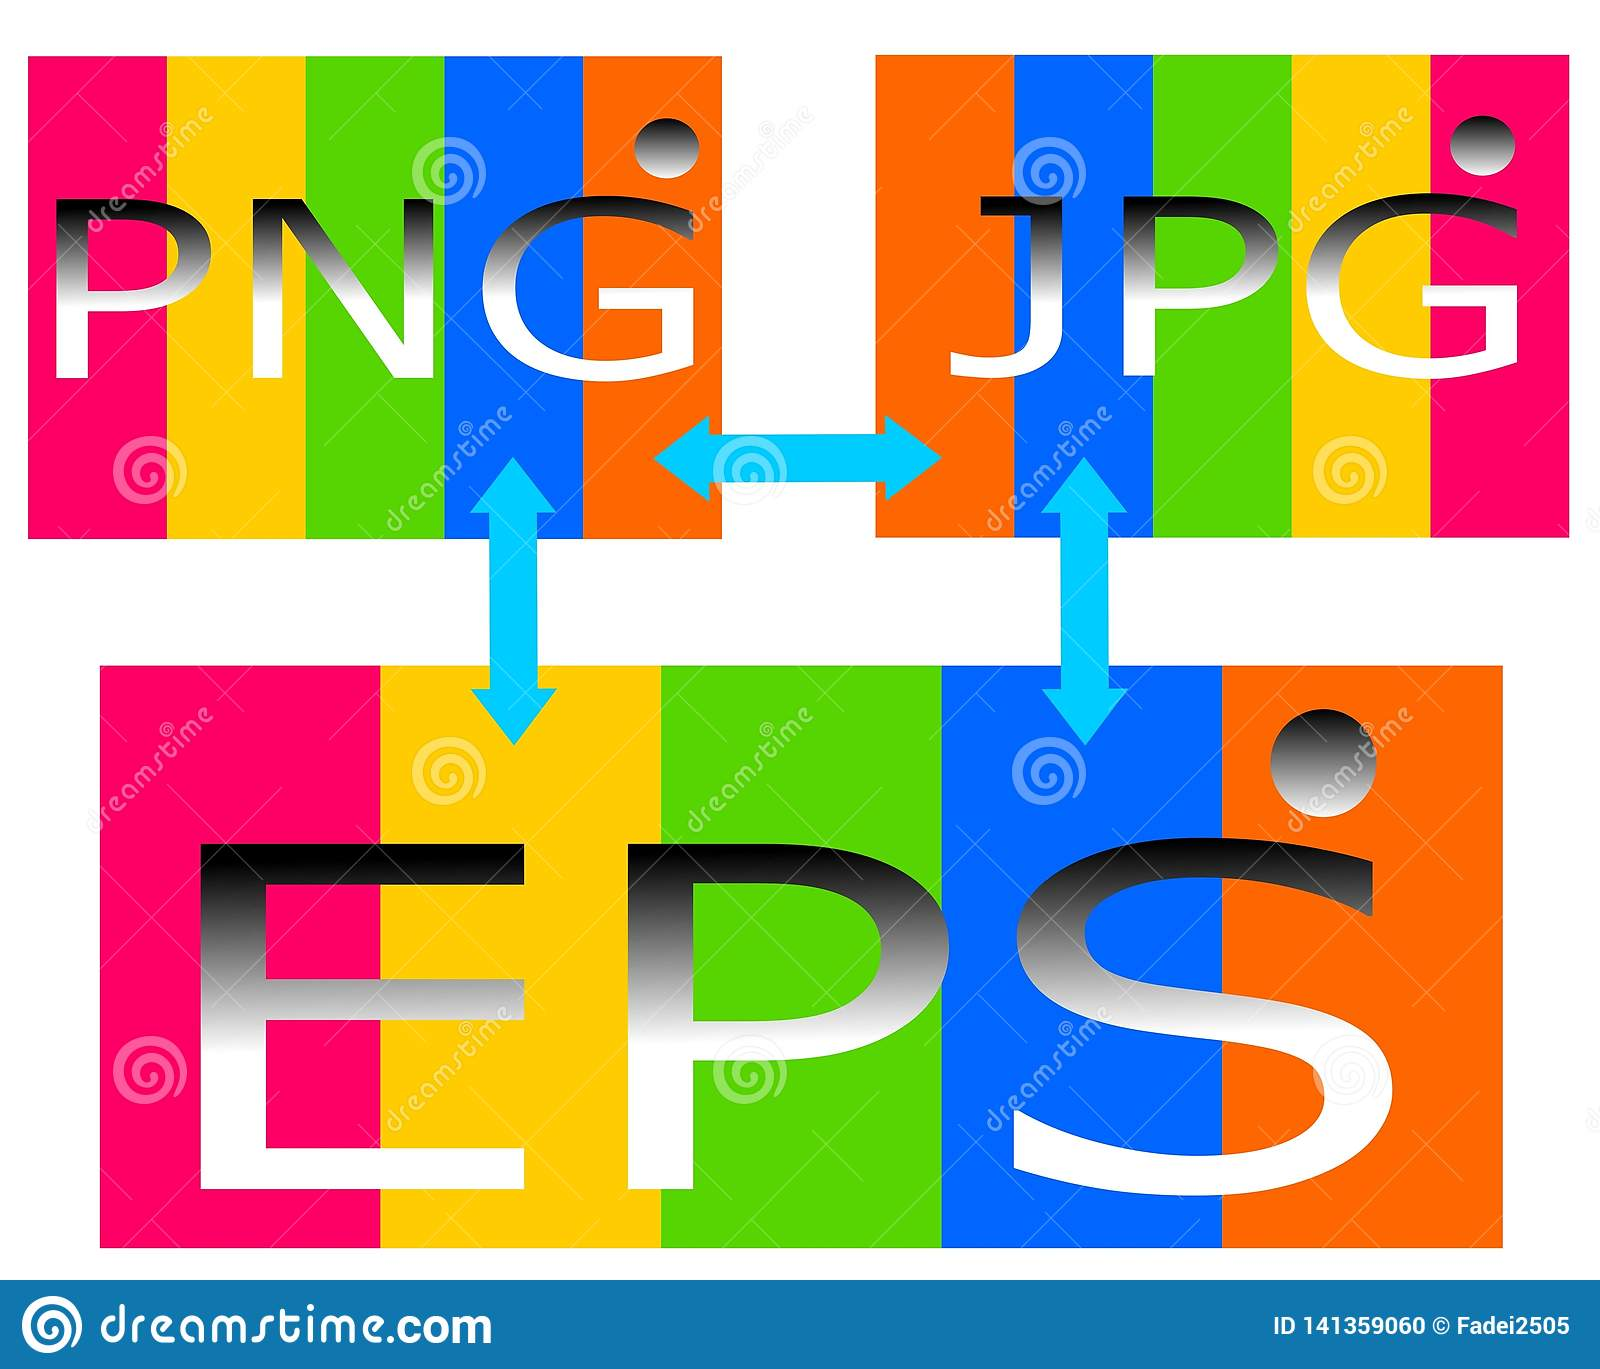 Drawing logo of png jpg eps file.